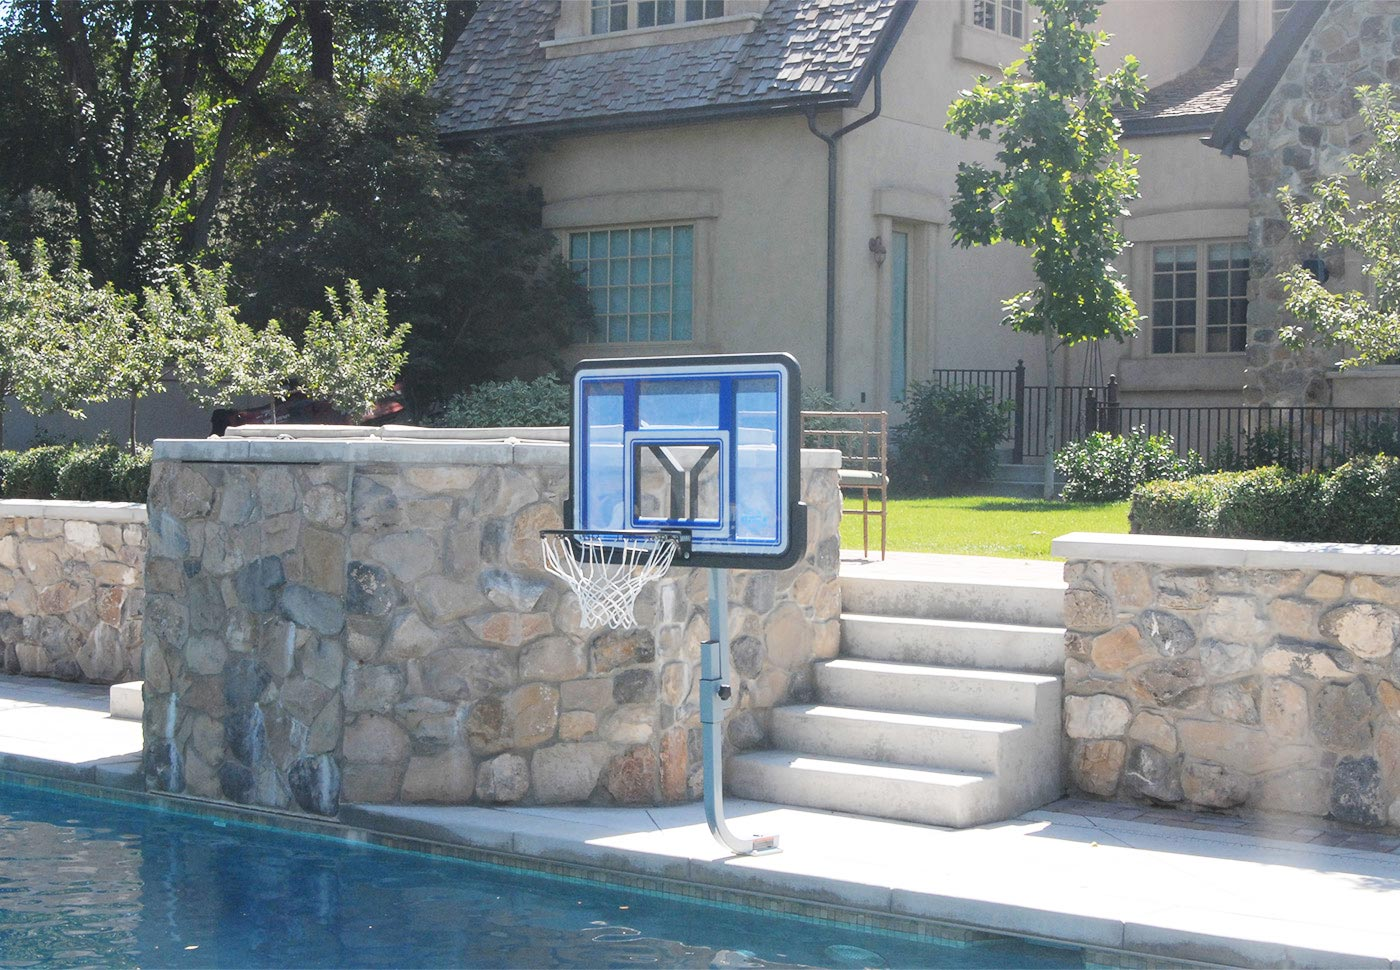 QUIKFIRE BASKETBALL - With On-Deck Anchor System BOXES A, C, D - SwimShape